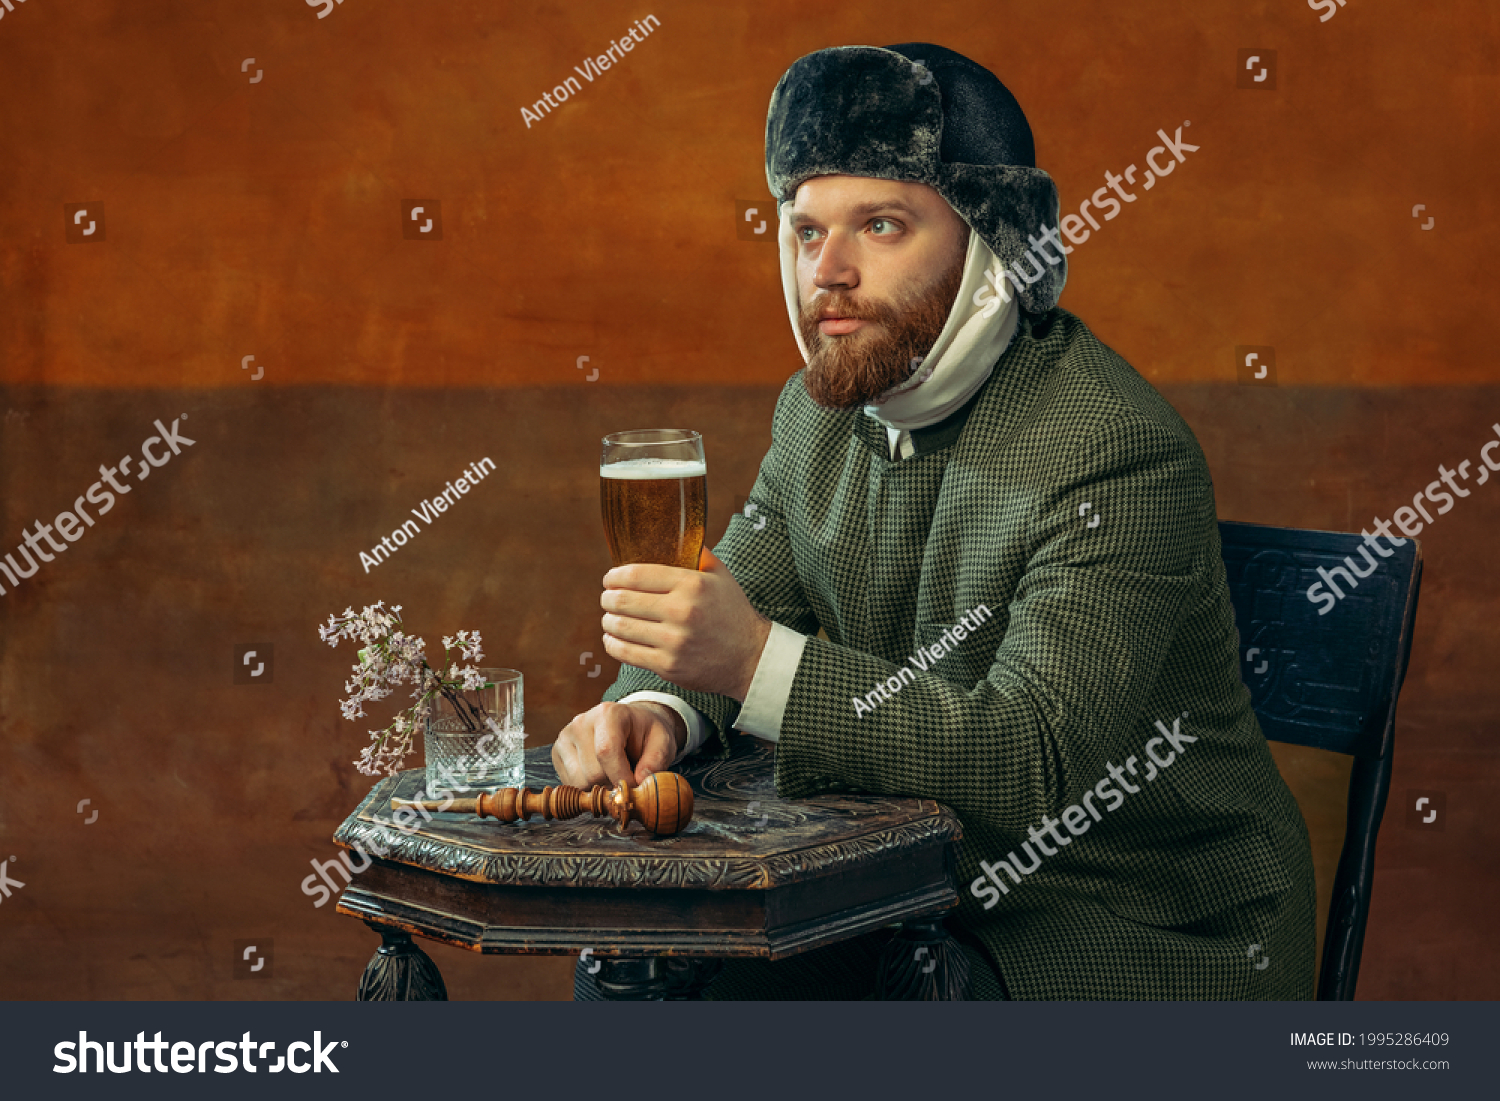 Drinking beer. Portrait of red headed and bearded man playing famous artist Van Gogh isolated on dark orange bacground. Concept of art, eras comparison, fashion. imitation, humor, ad. Bandaged ear. #1995286409